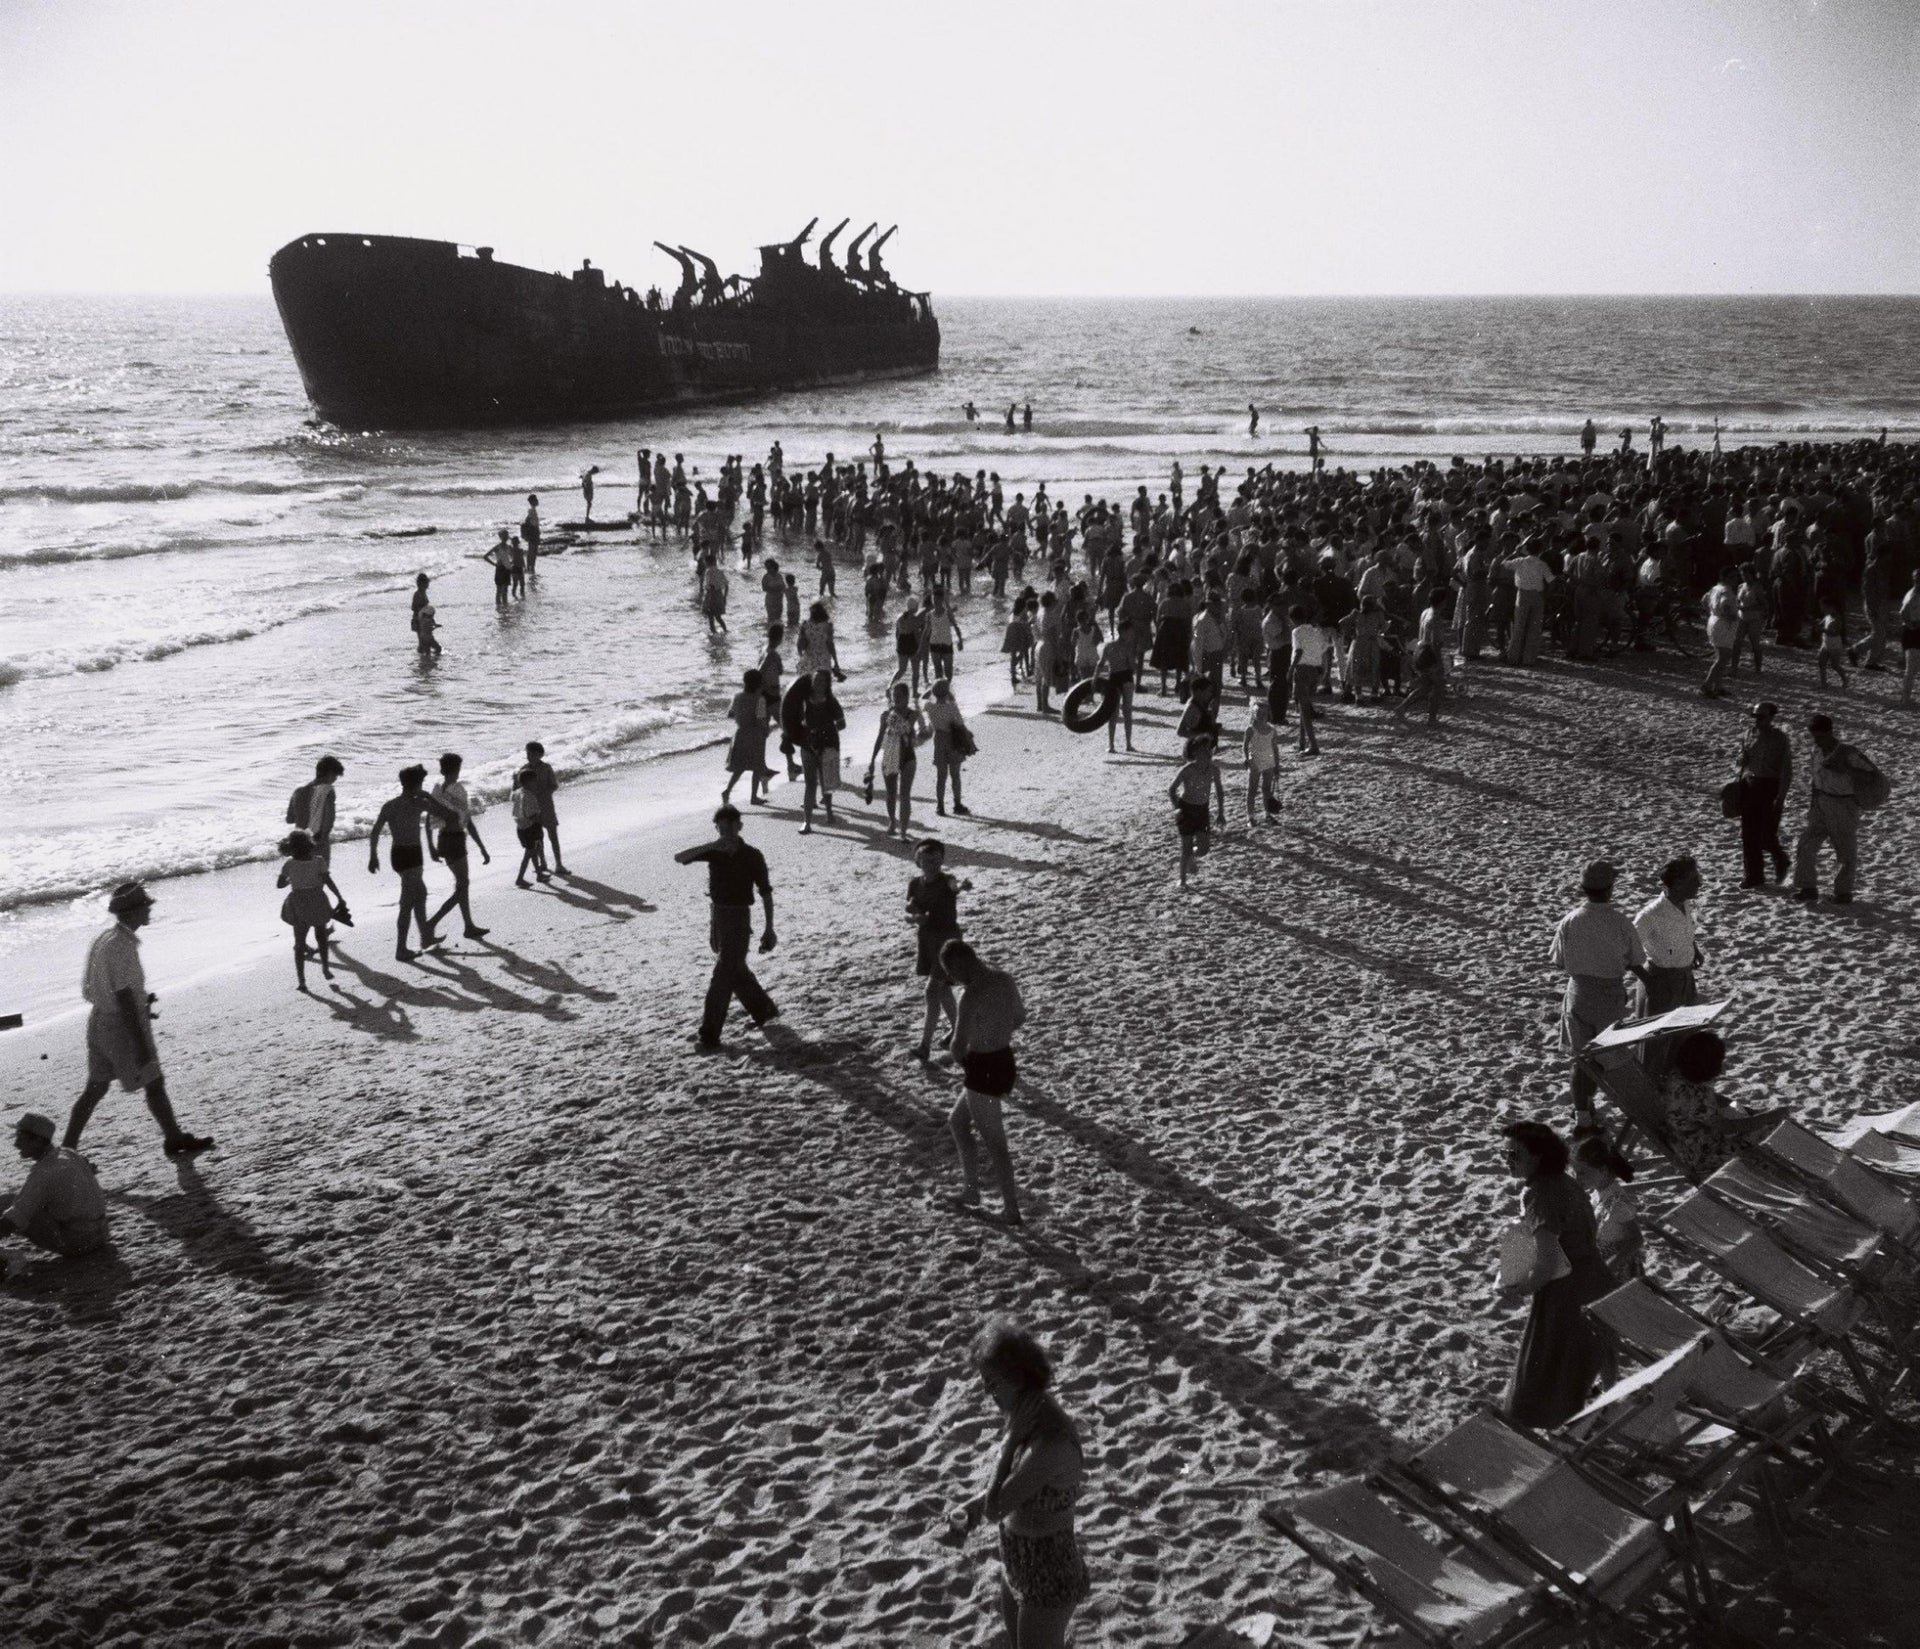 Members of the Herut movement gather at the Tel Aviv beach to watch the heruth memorial gathering on the 1st anniversary of the Atalena ship incident, June 1949.